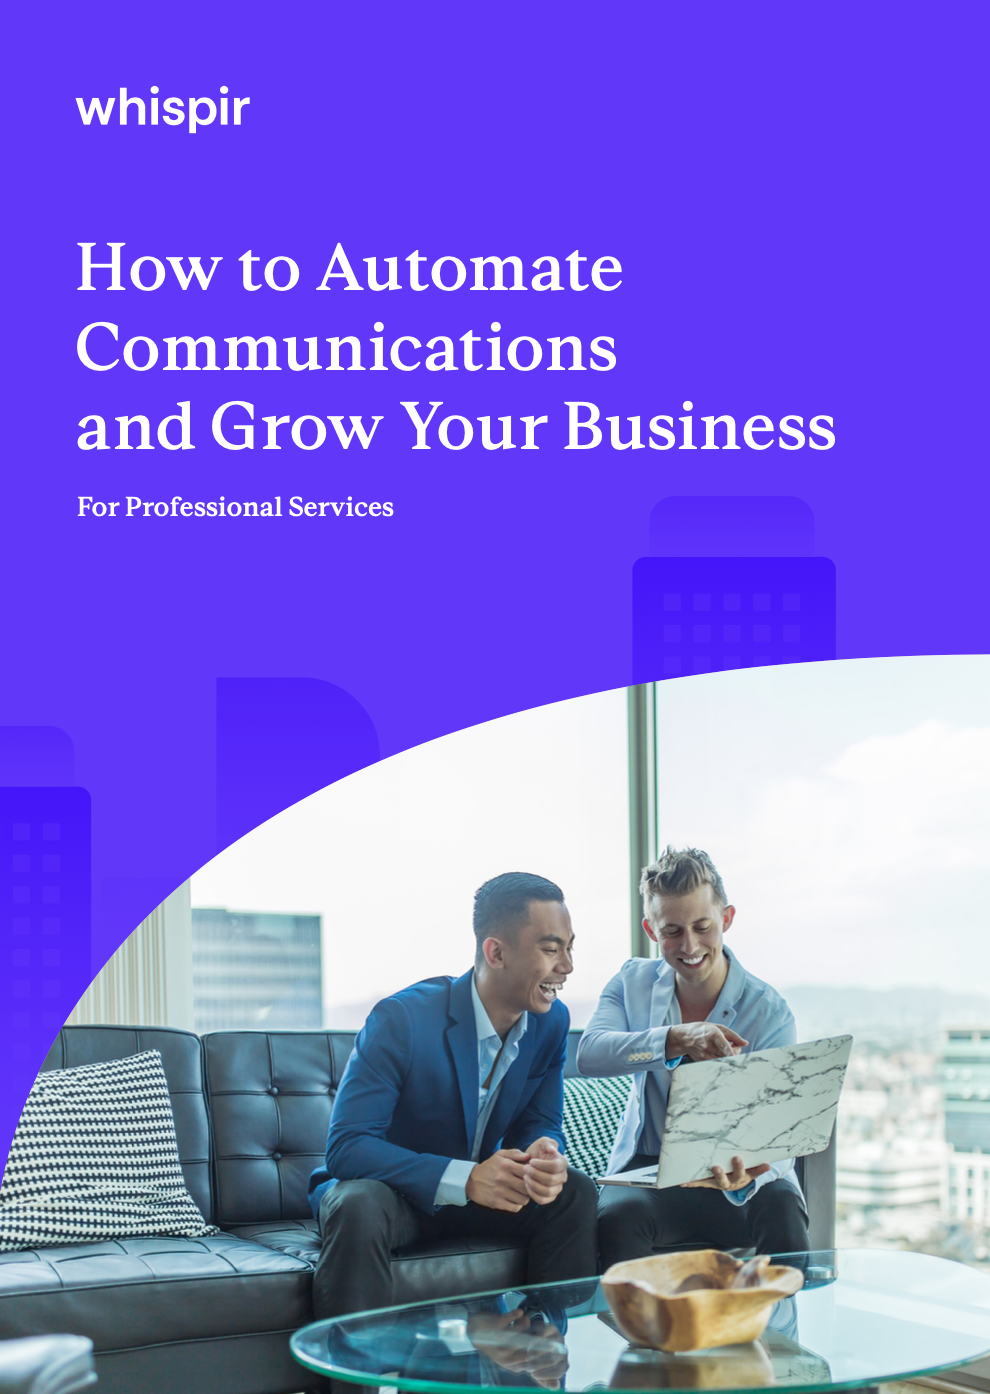 Professional Services: Automate and Grow Image